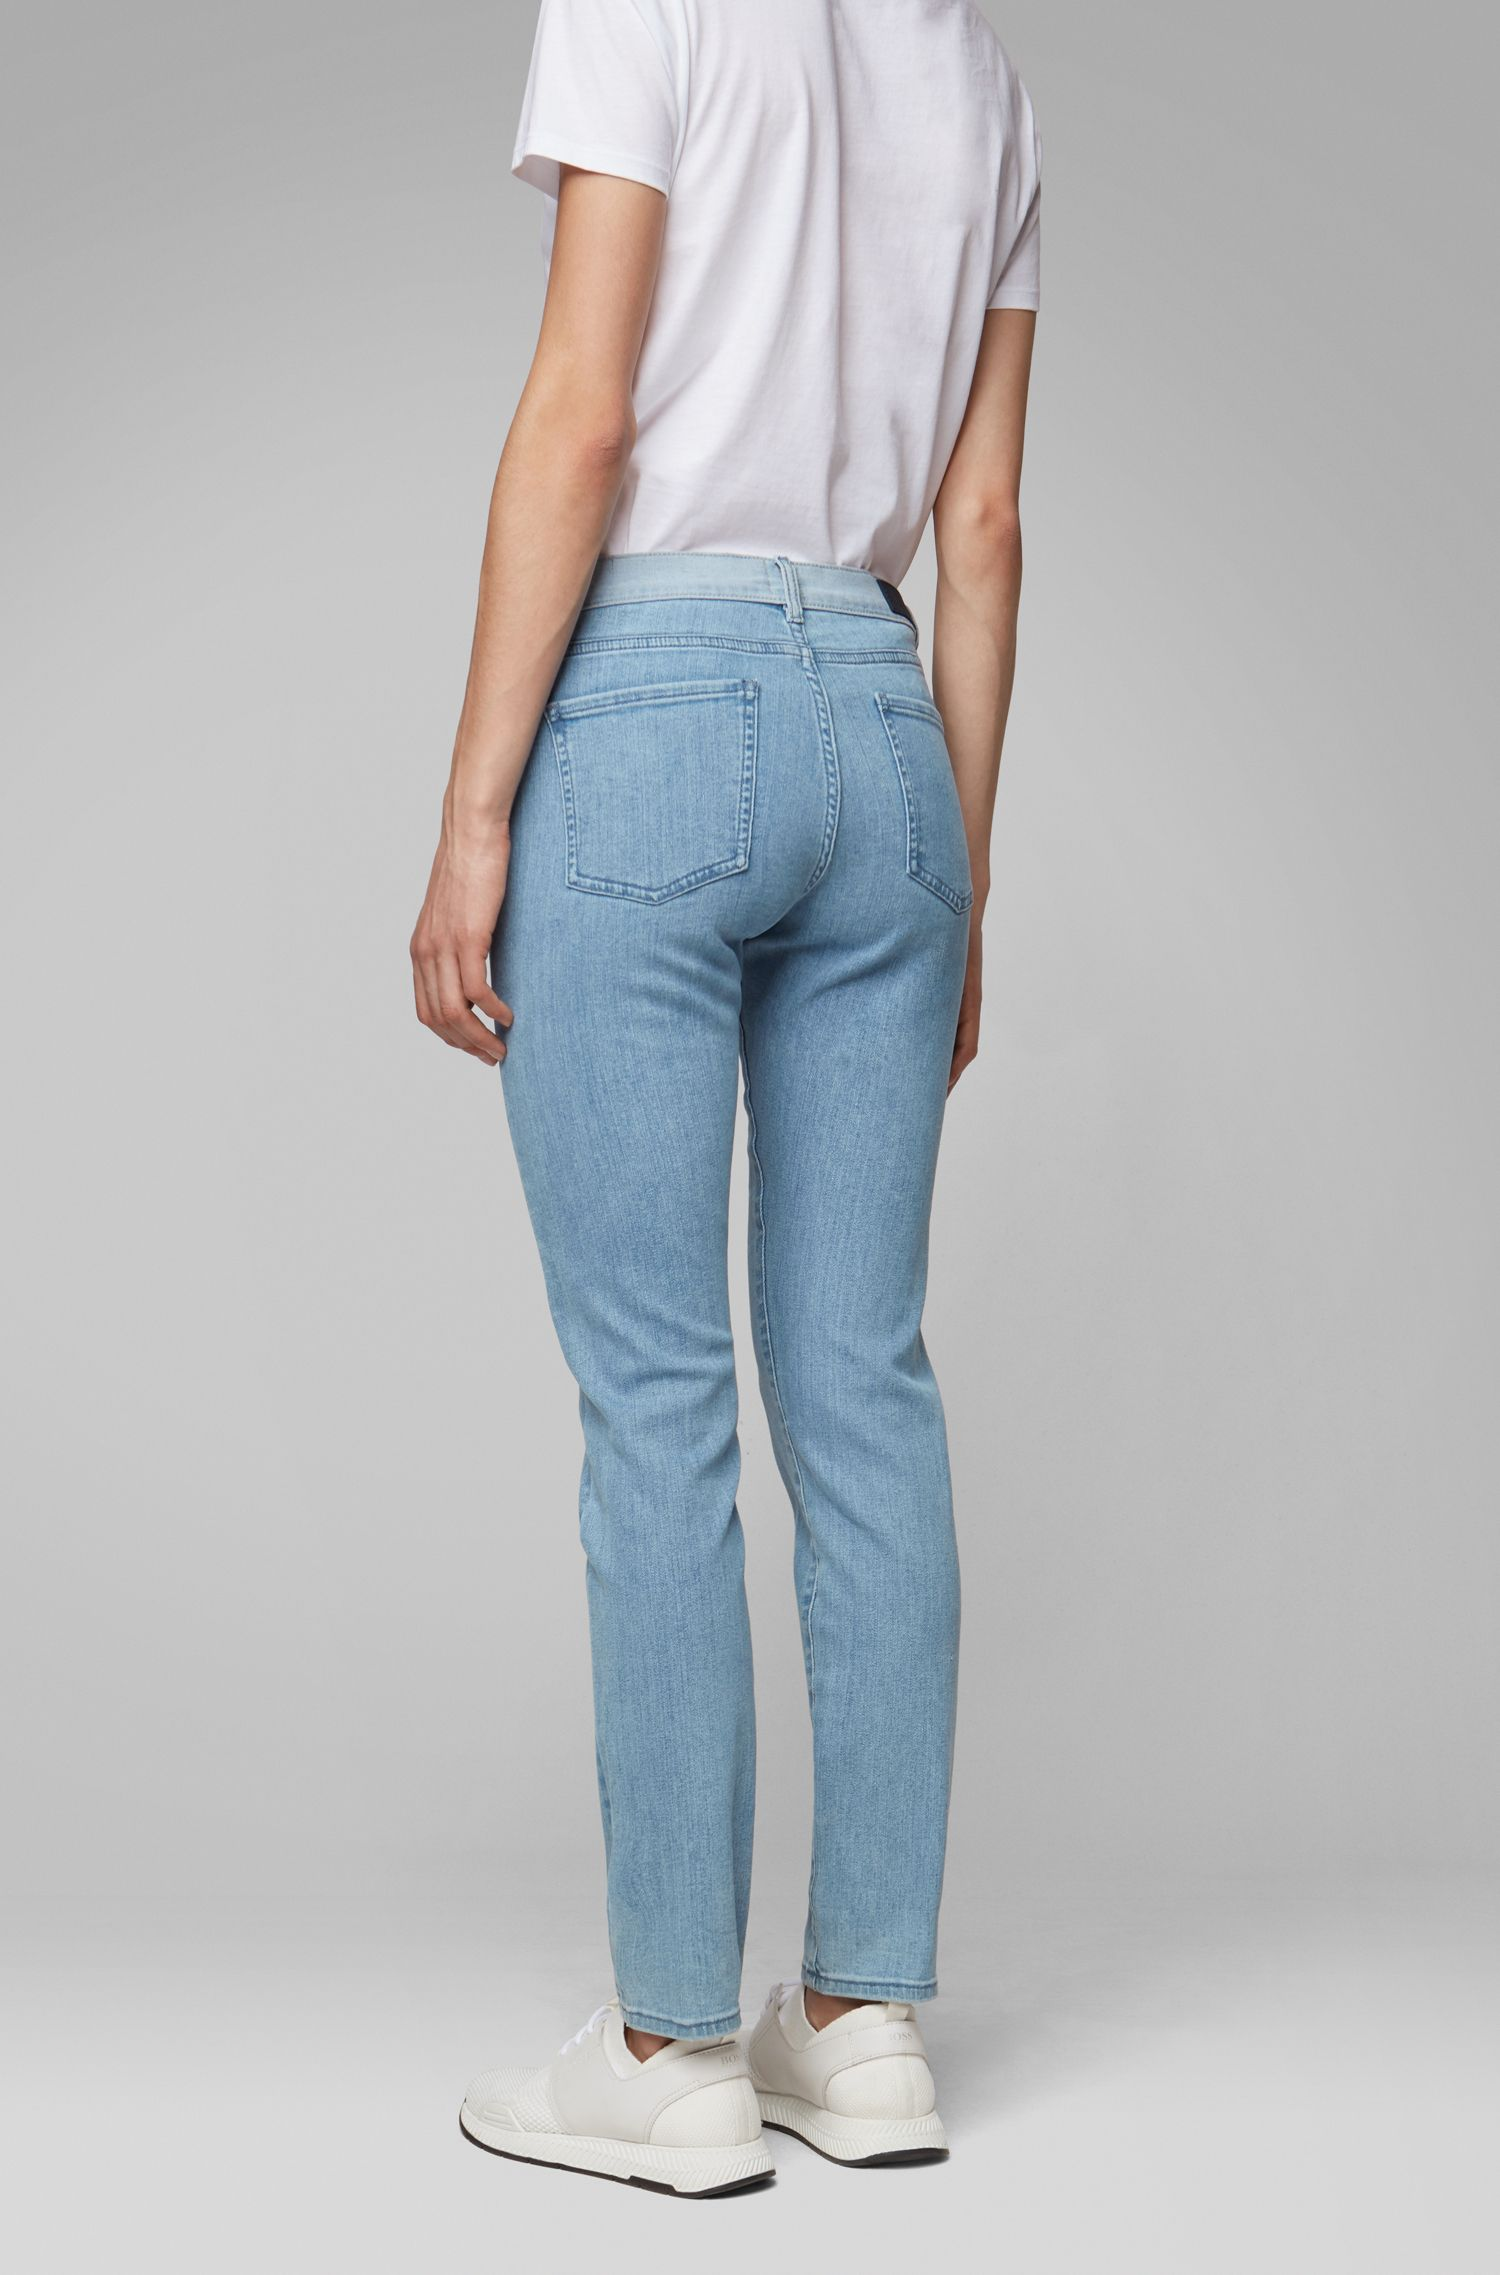 Slim-Fit Jeans aus Stretch-Denim mit kontrastfarbenem Bund, Blau